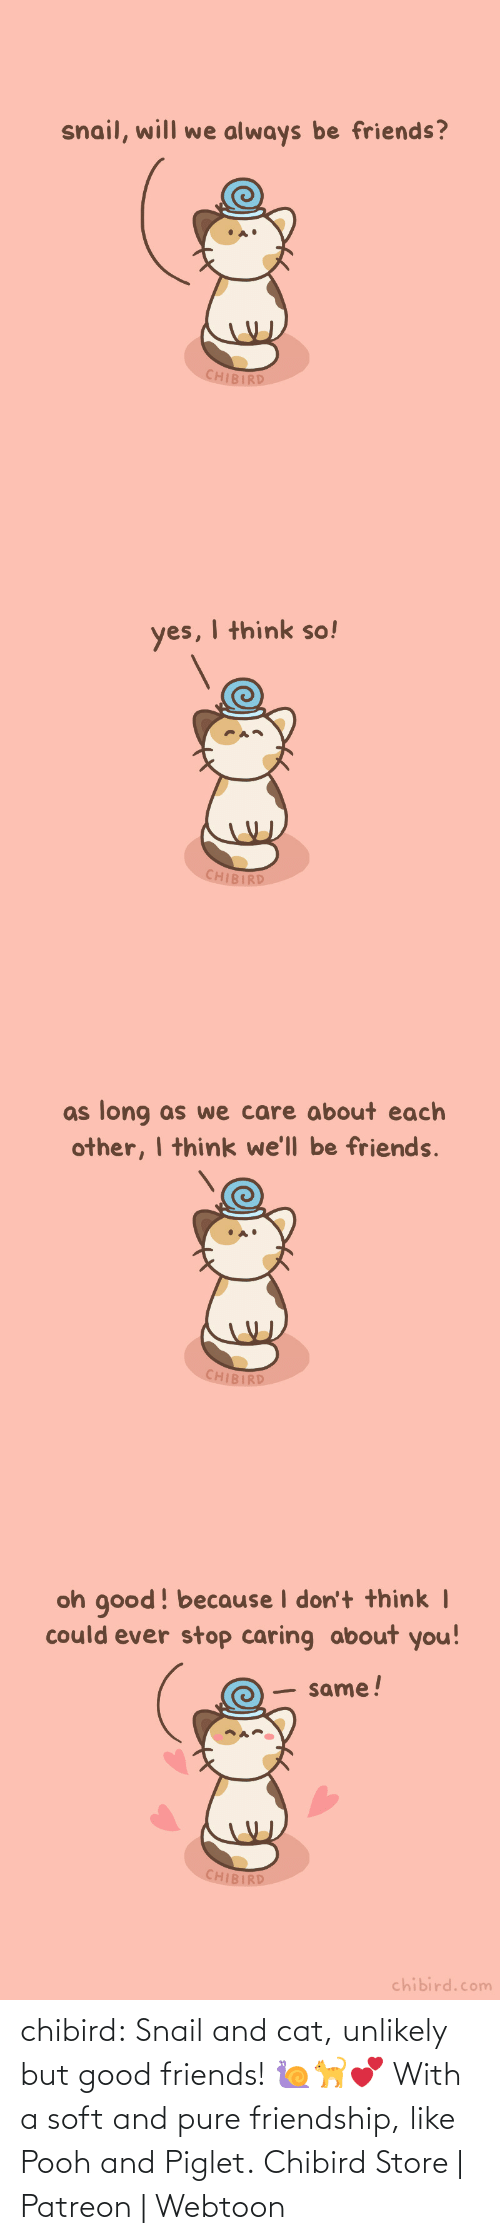 pure: chibird:  Snail and cat, unlikely but good friends! 🐌🐈💕 With a soft and pure friendship, like Pooh and Piglet.  Chibird Store   Patreon   Webtoon